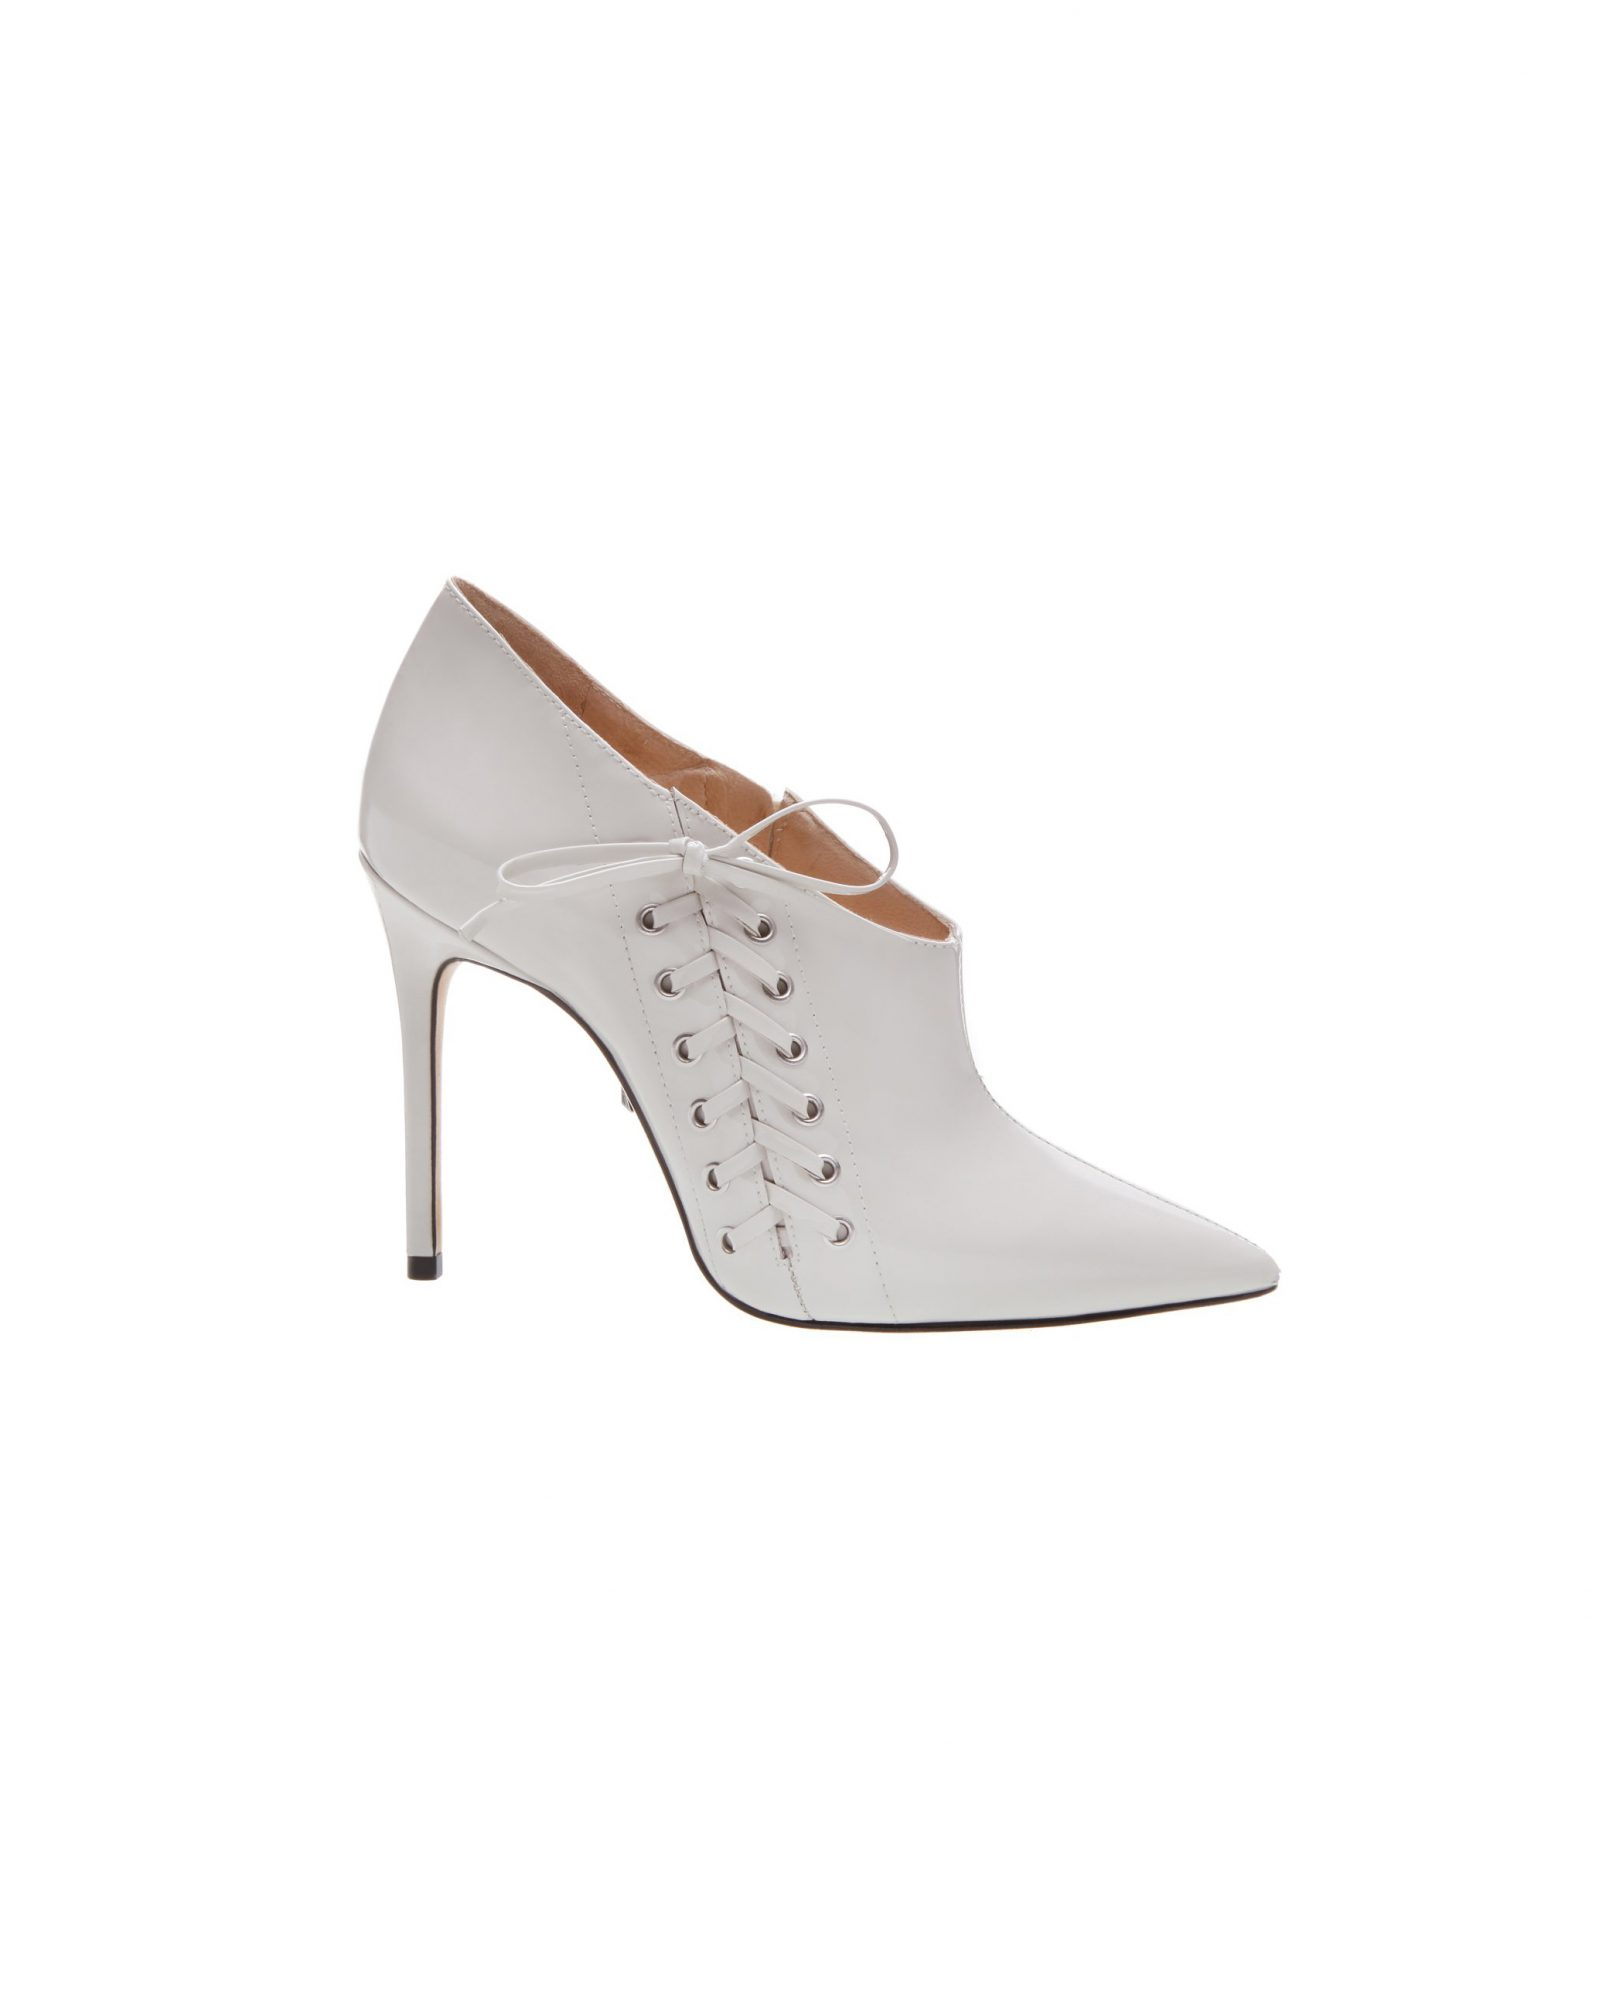 gray lace-up bridal booties schutz iliana ankle boots